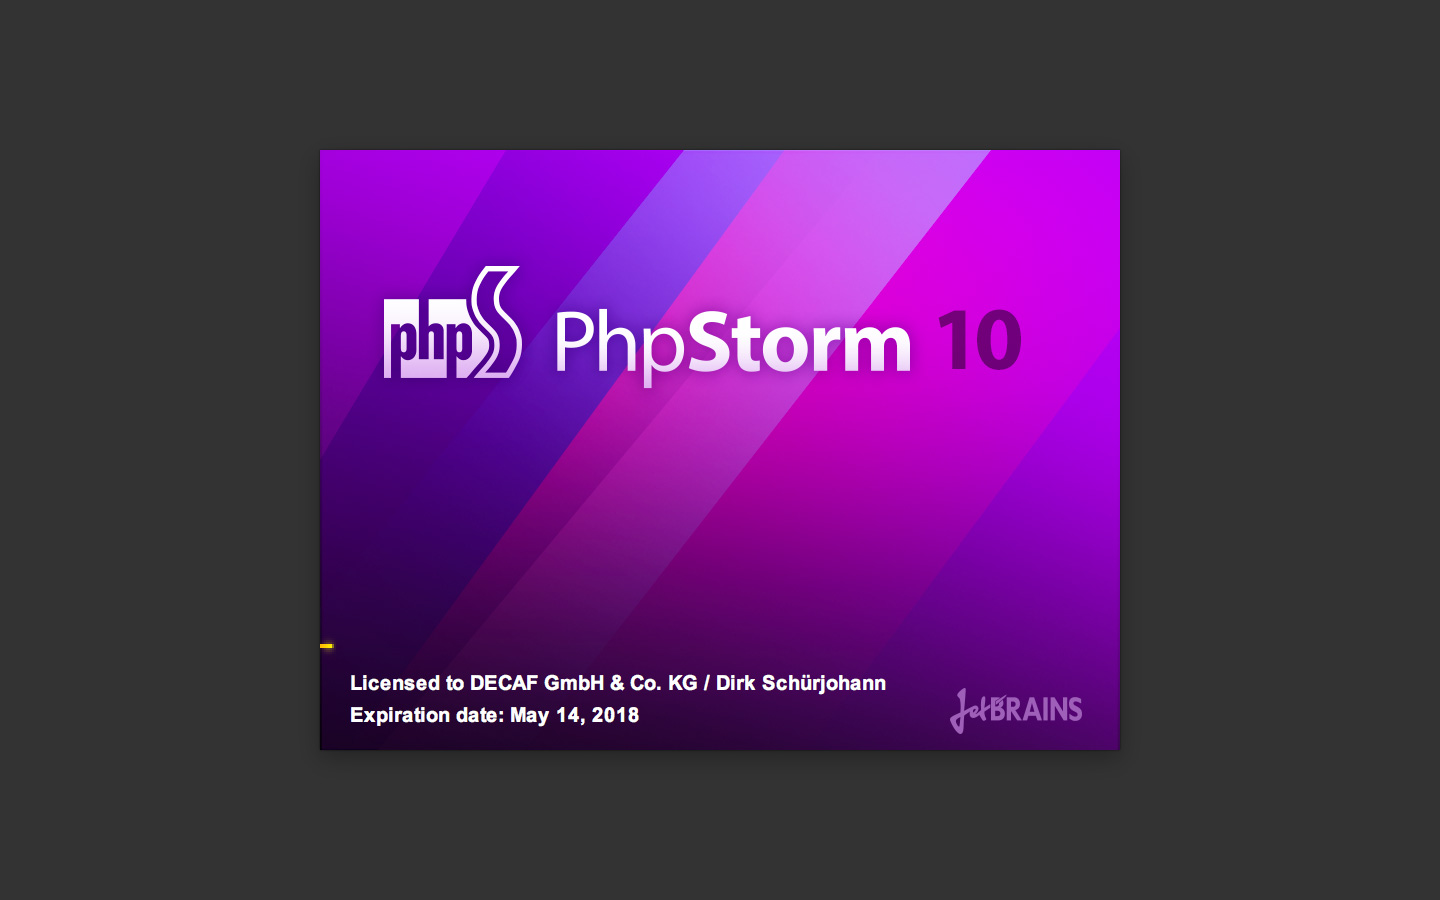 Beautiful PhpStorm 10 splash screen